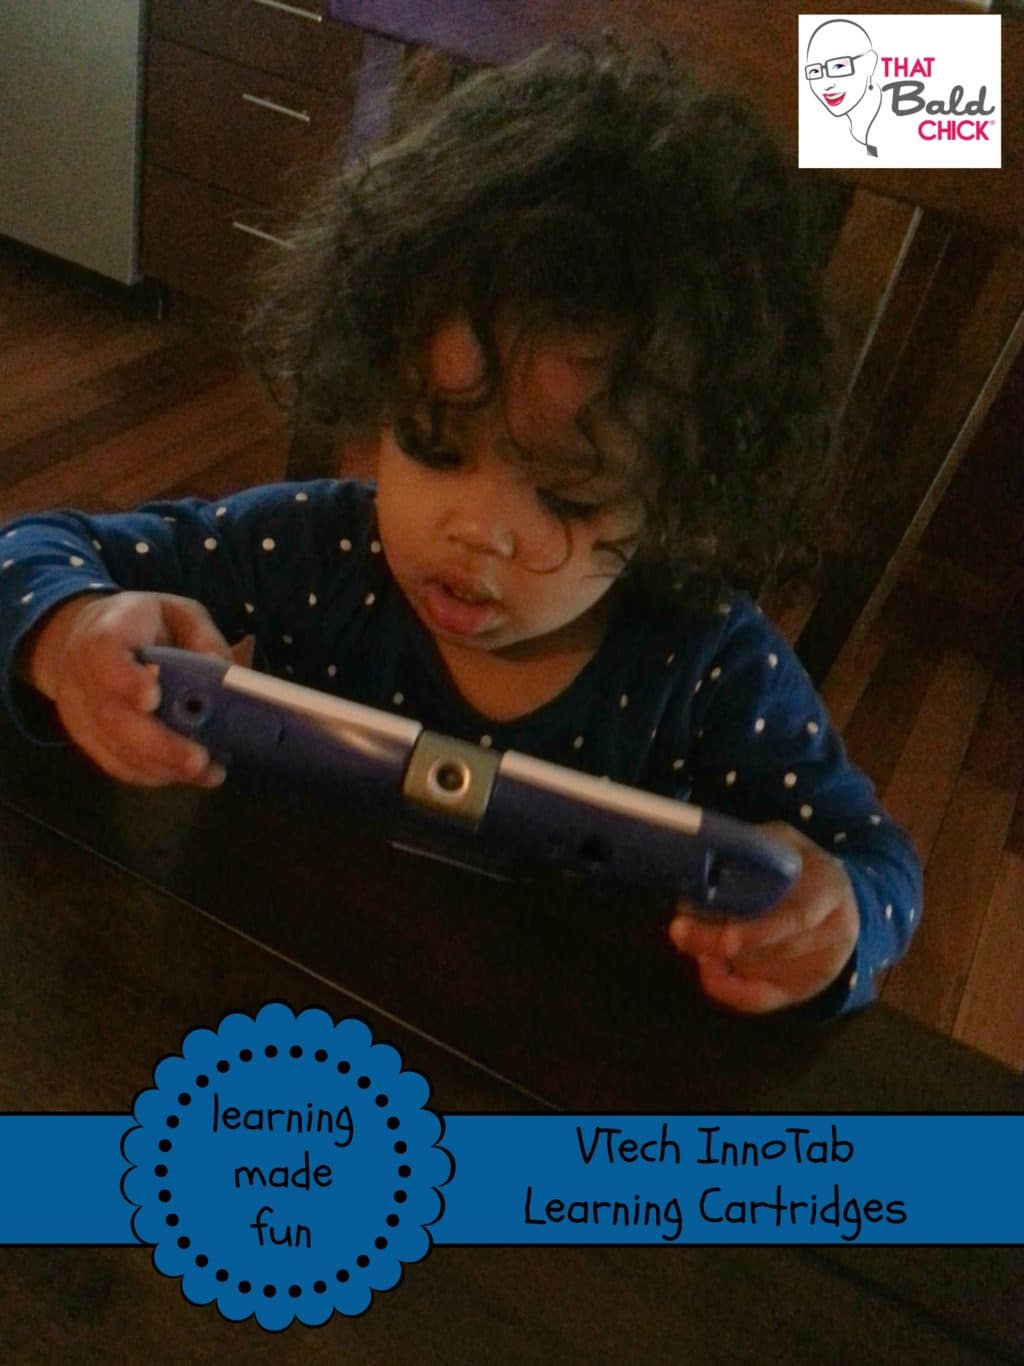 learning made fun with VTech InnoTab Learning Cartridges